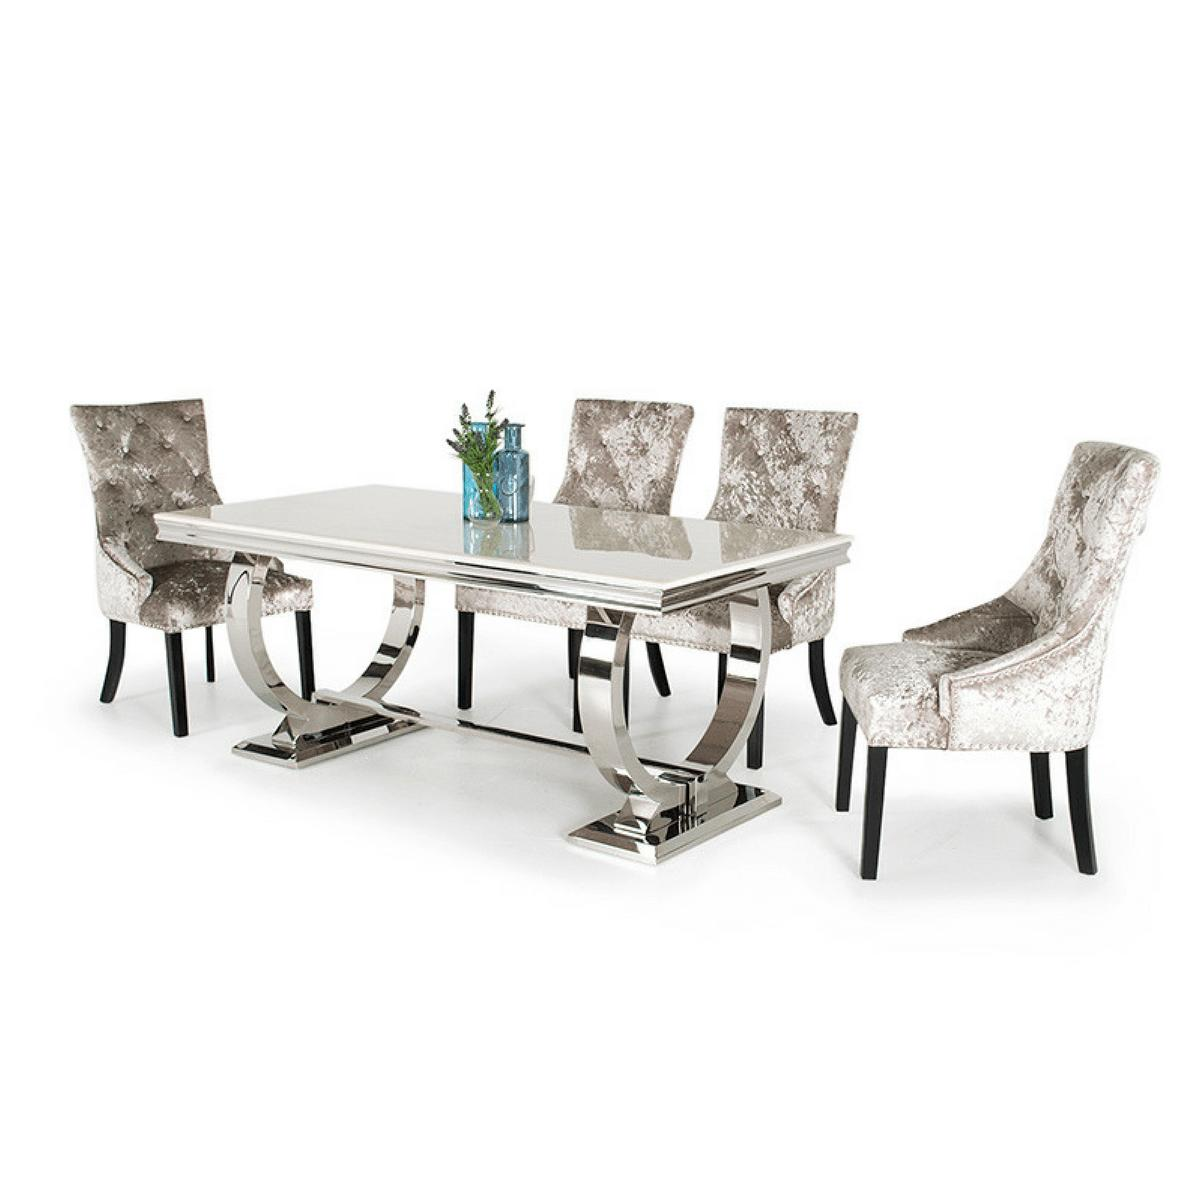 Marble and Metal Dining Table